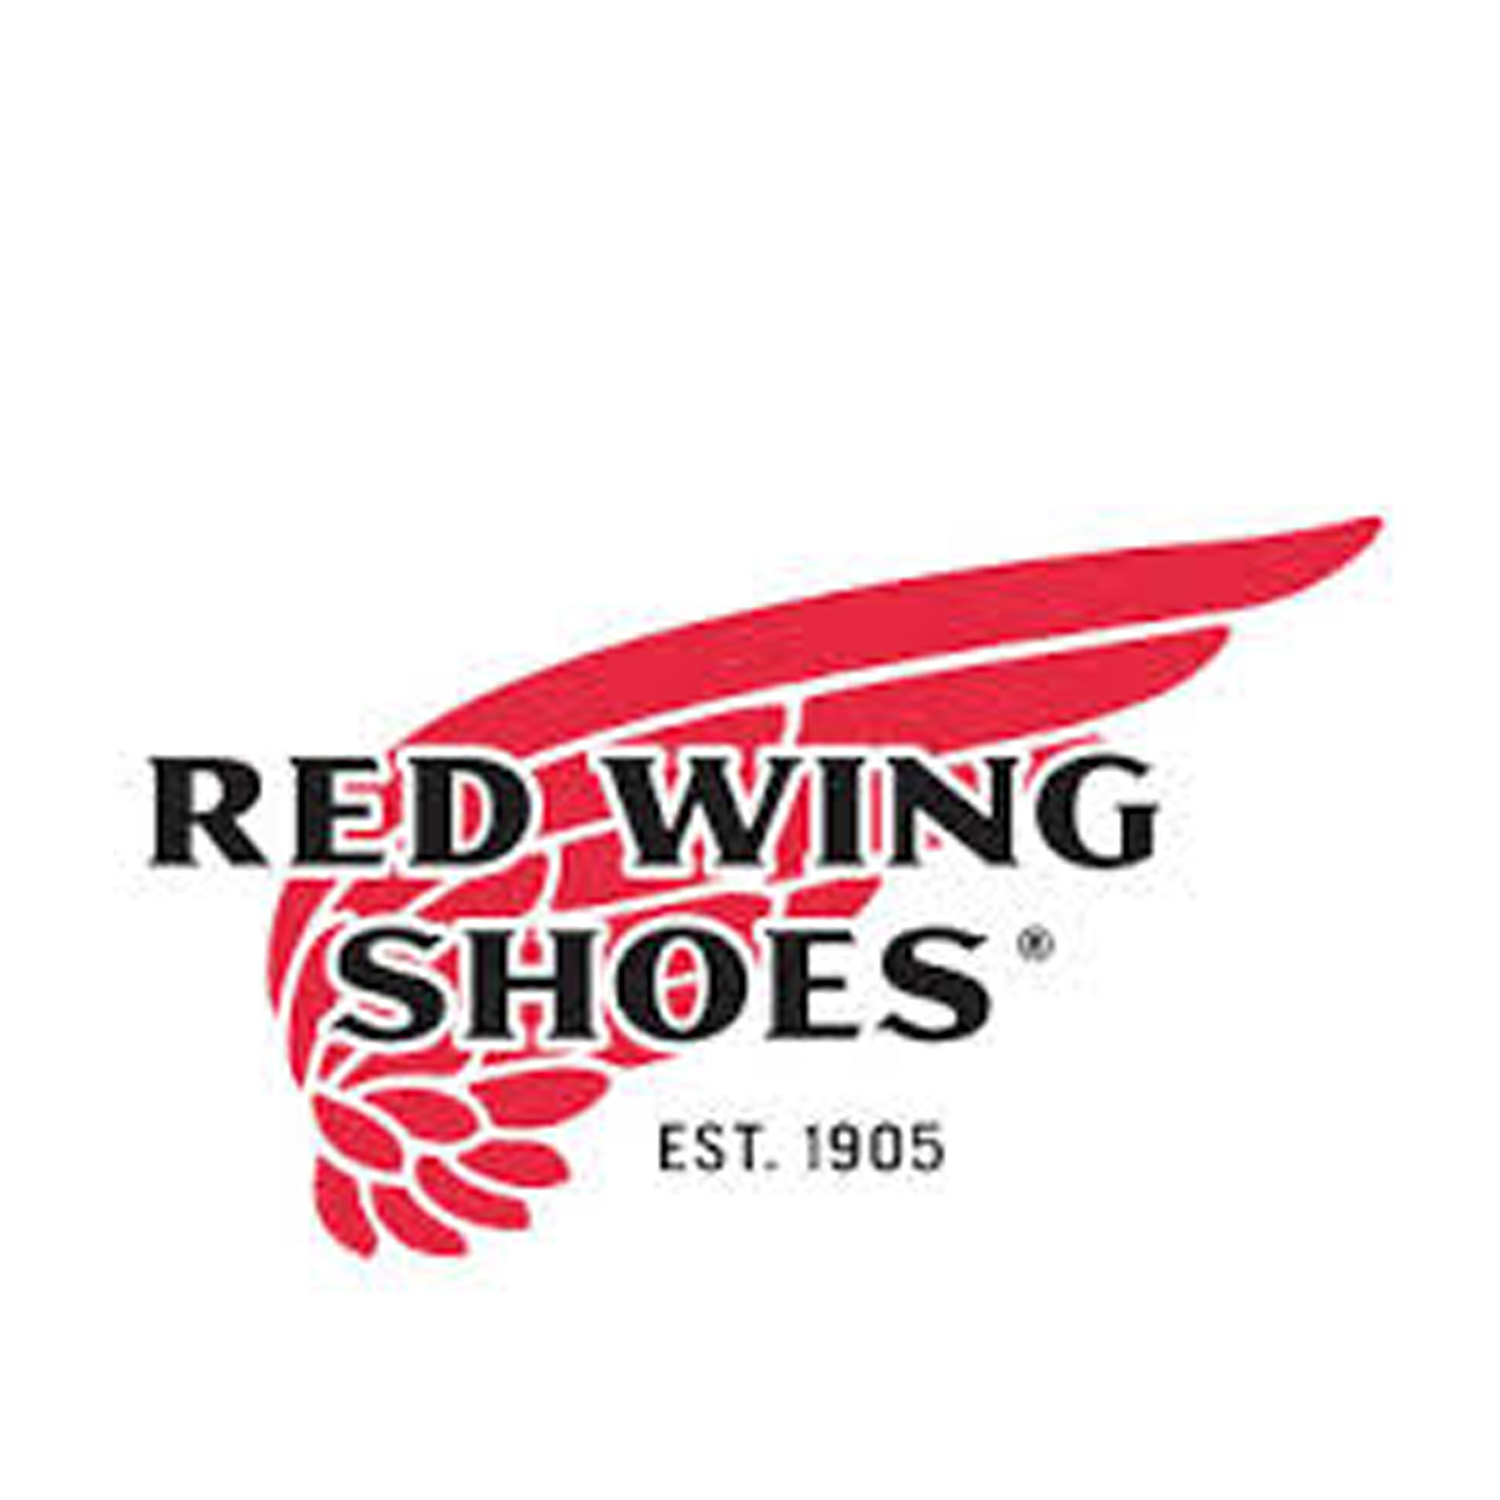 RED WING SHOES  Purpose-built footwear for men and women that has been at the spearhead of innovation in the standard of excellence, with a promise to never compromise on their quality. (Redwing, MN, USA)